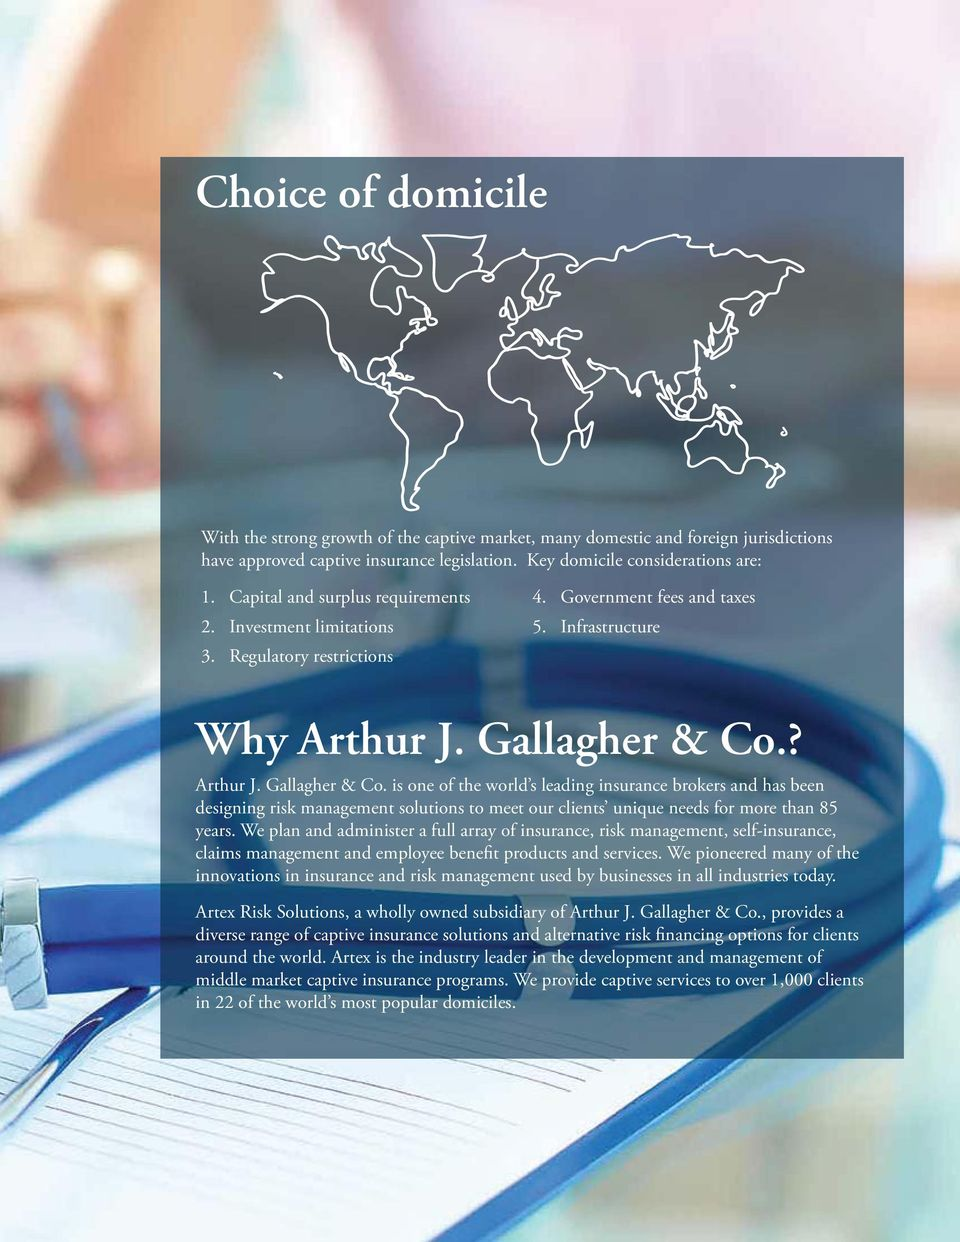 ? Arthur J. Gallagher & Co. is one of the world s leading insurance brokers and has been designing risk management solutions to meet our clients unique needs for more than 85 years.